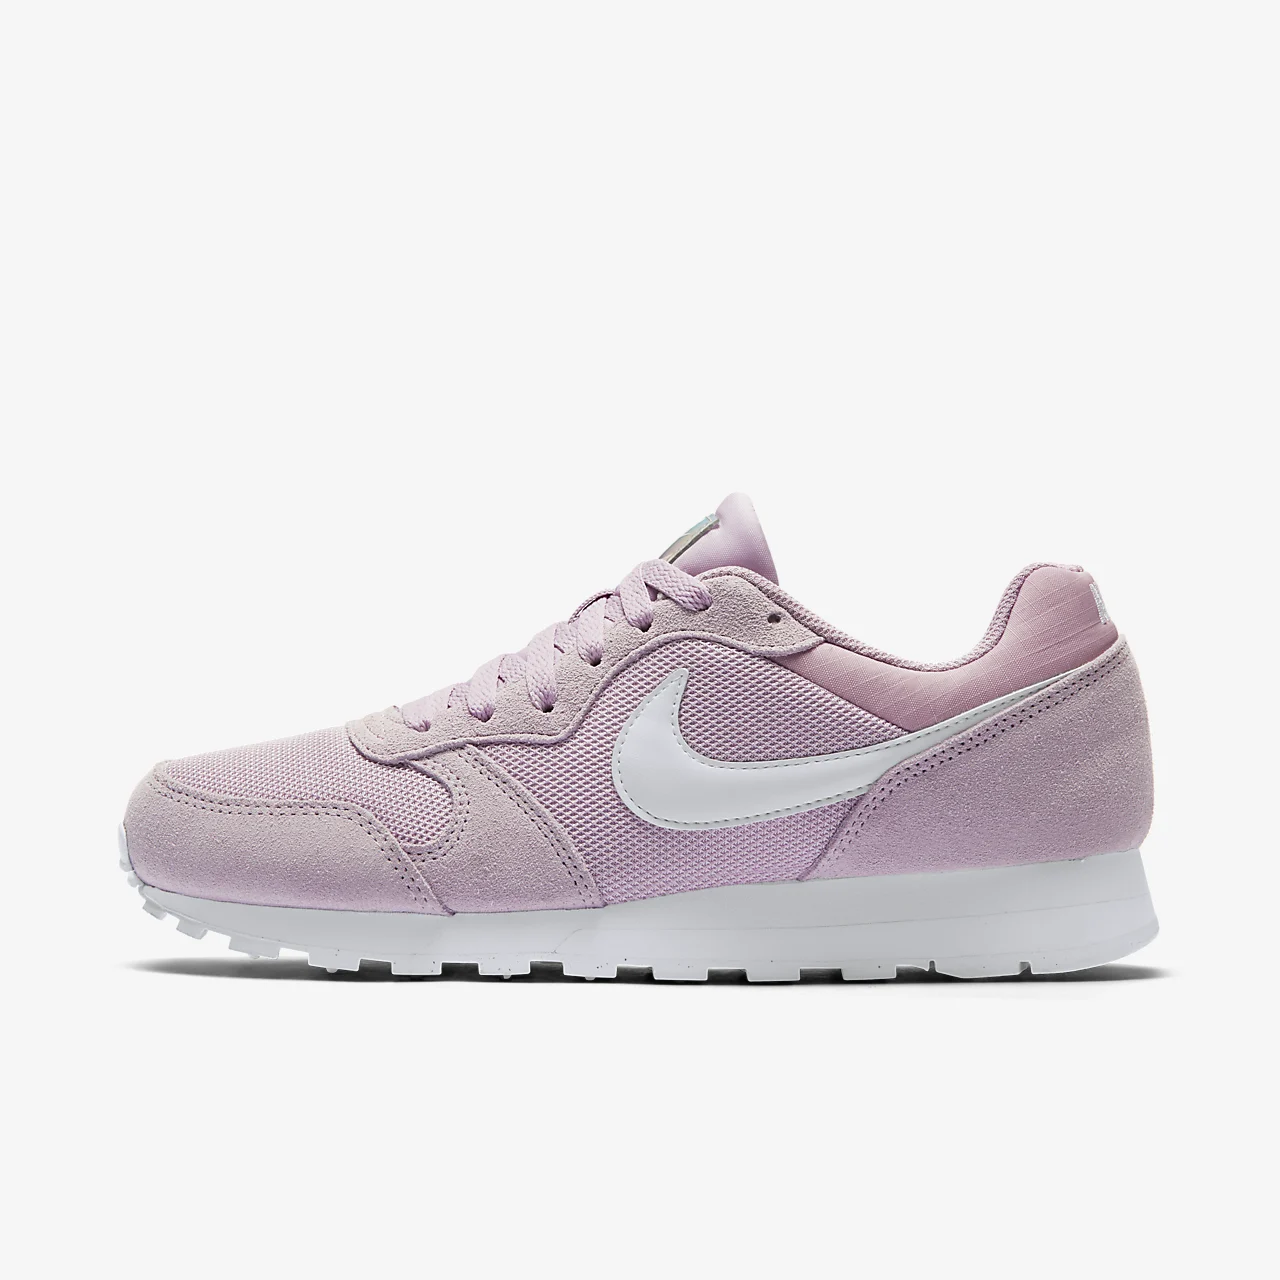 유럽직배송 나이키 NIKE Nike MD Runner 2 Women's Shoe 749869-500